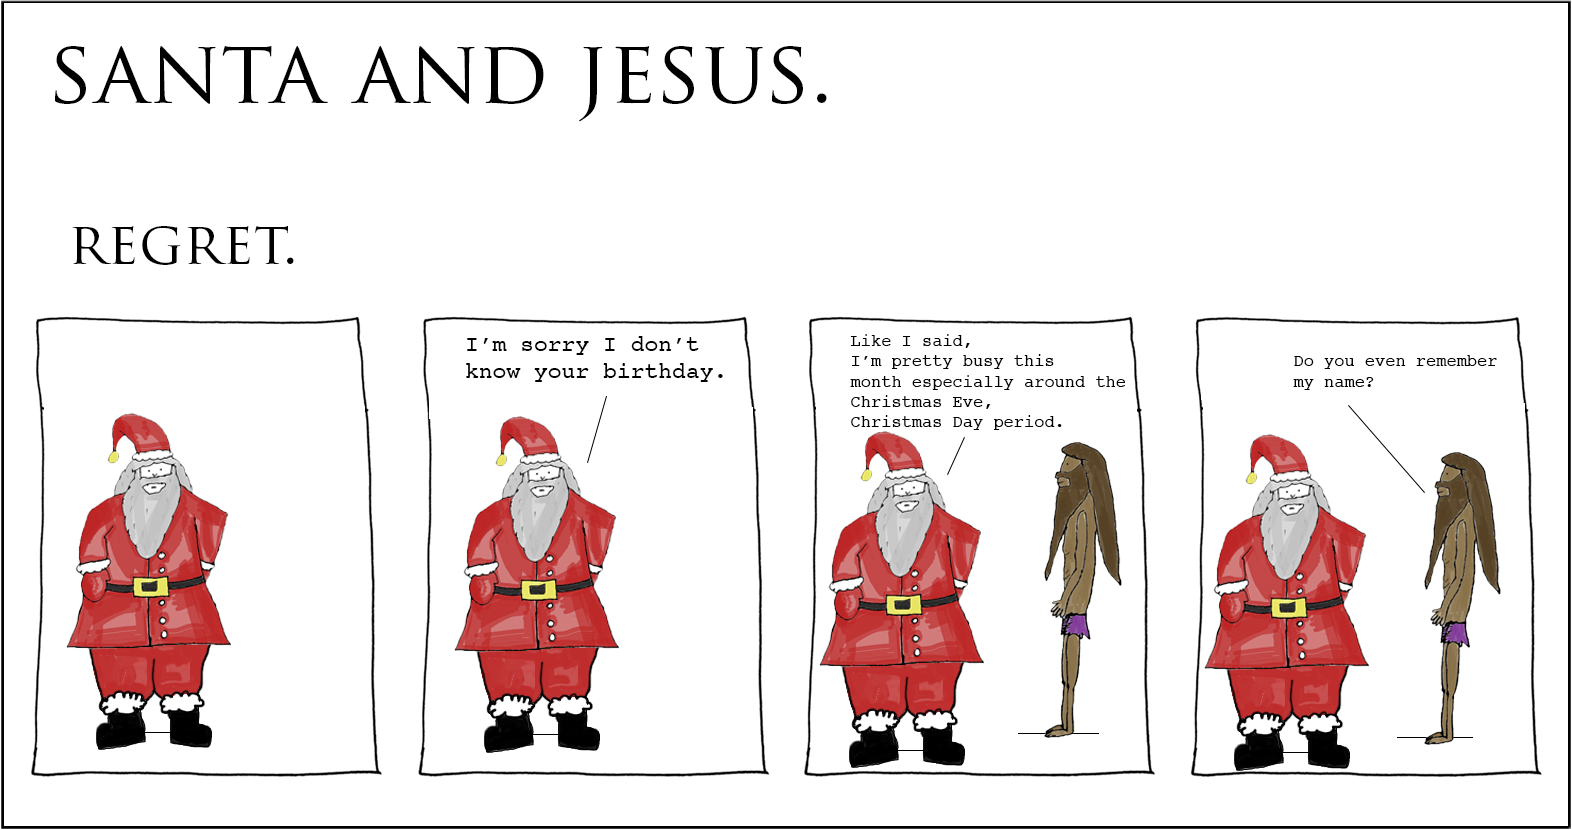 Santa and Jesus - Regret.